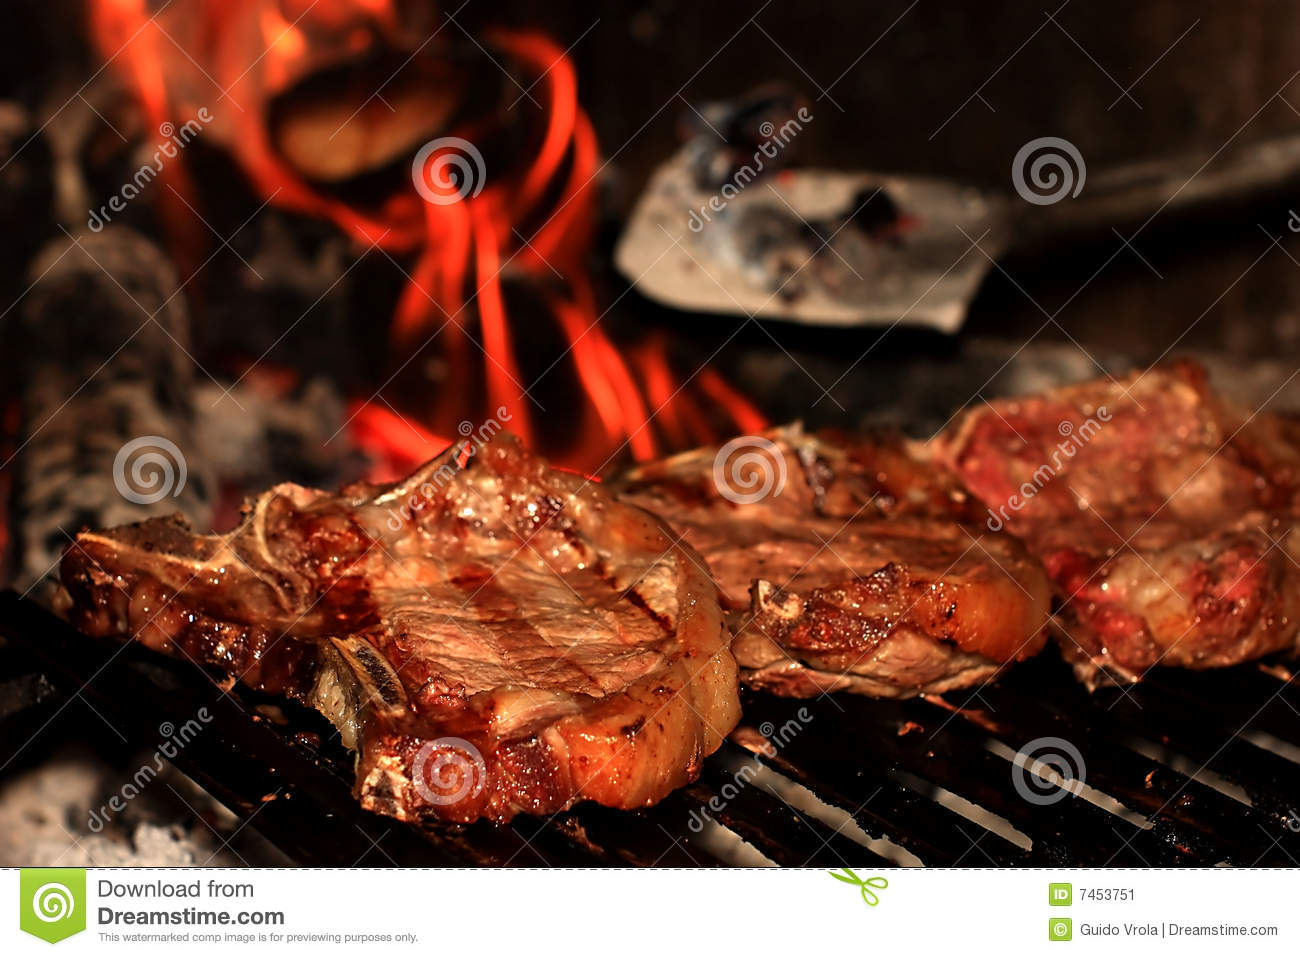 Steaks on the barbecue